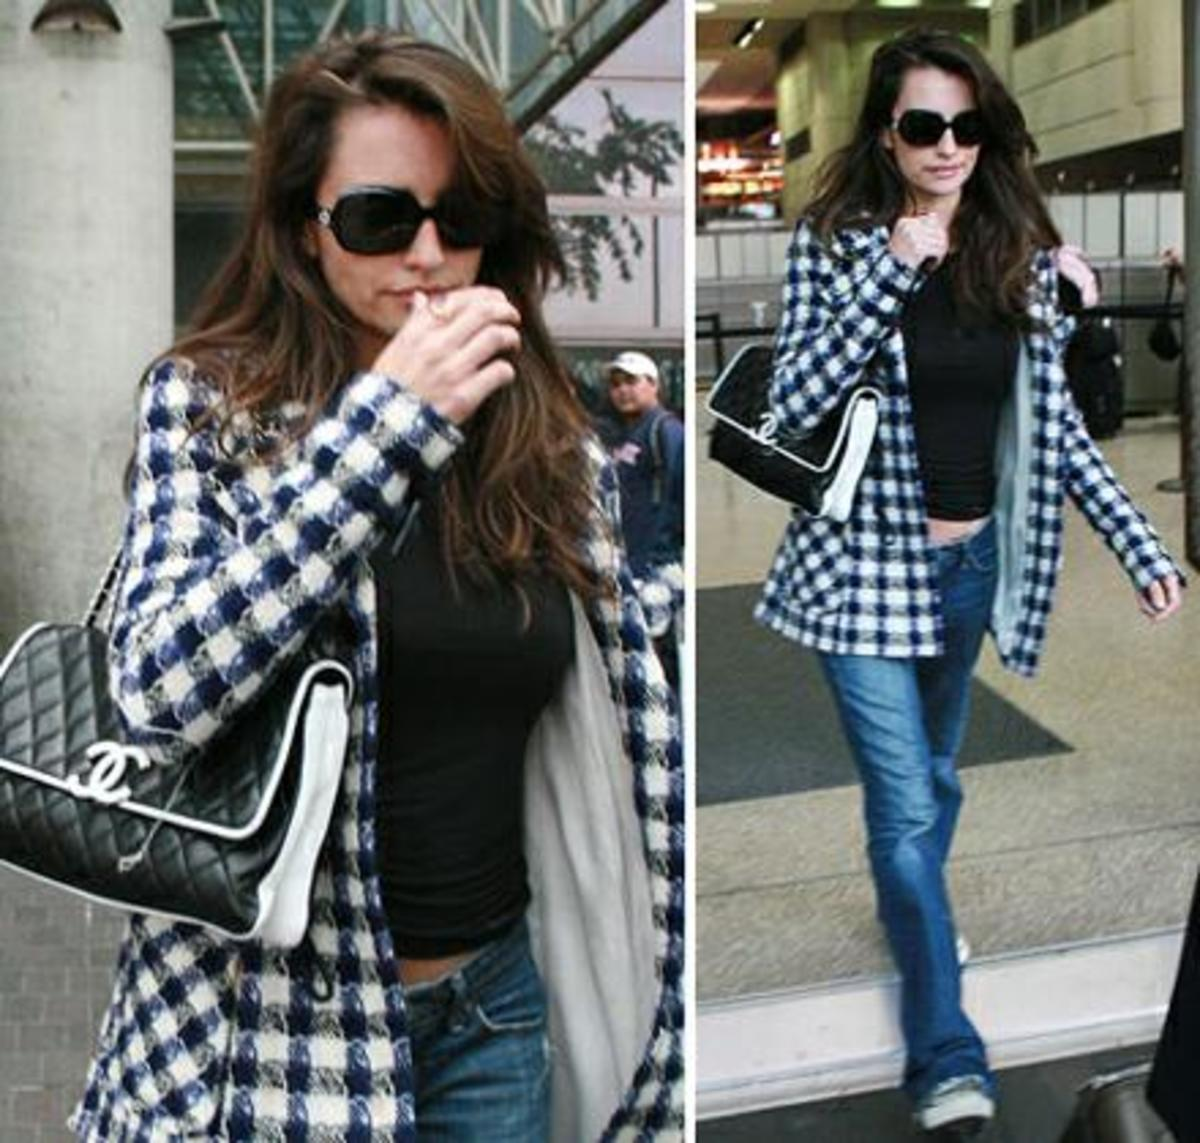 Penelope Cruz arriving at LAX airport carrying a Chanel flap bag